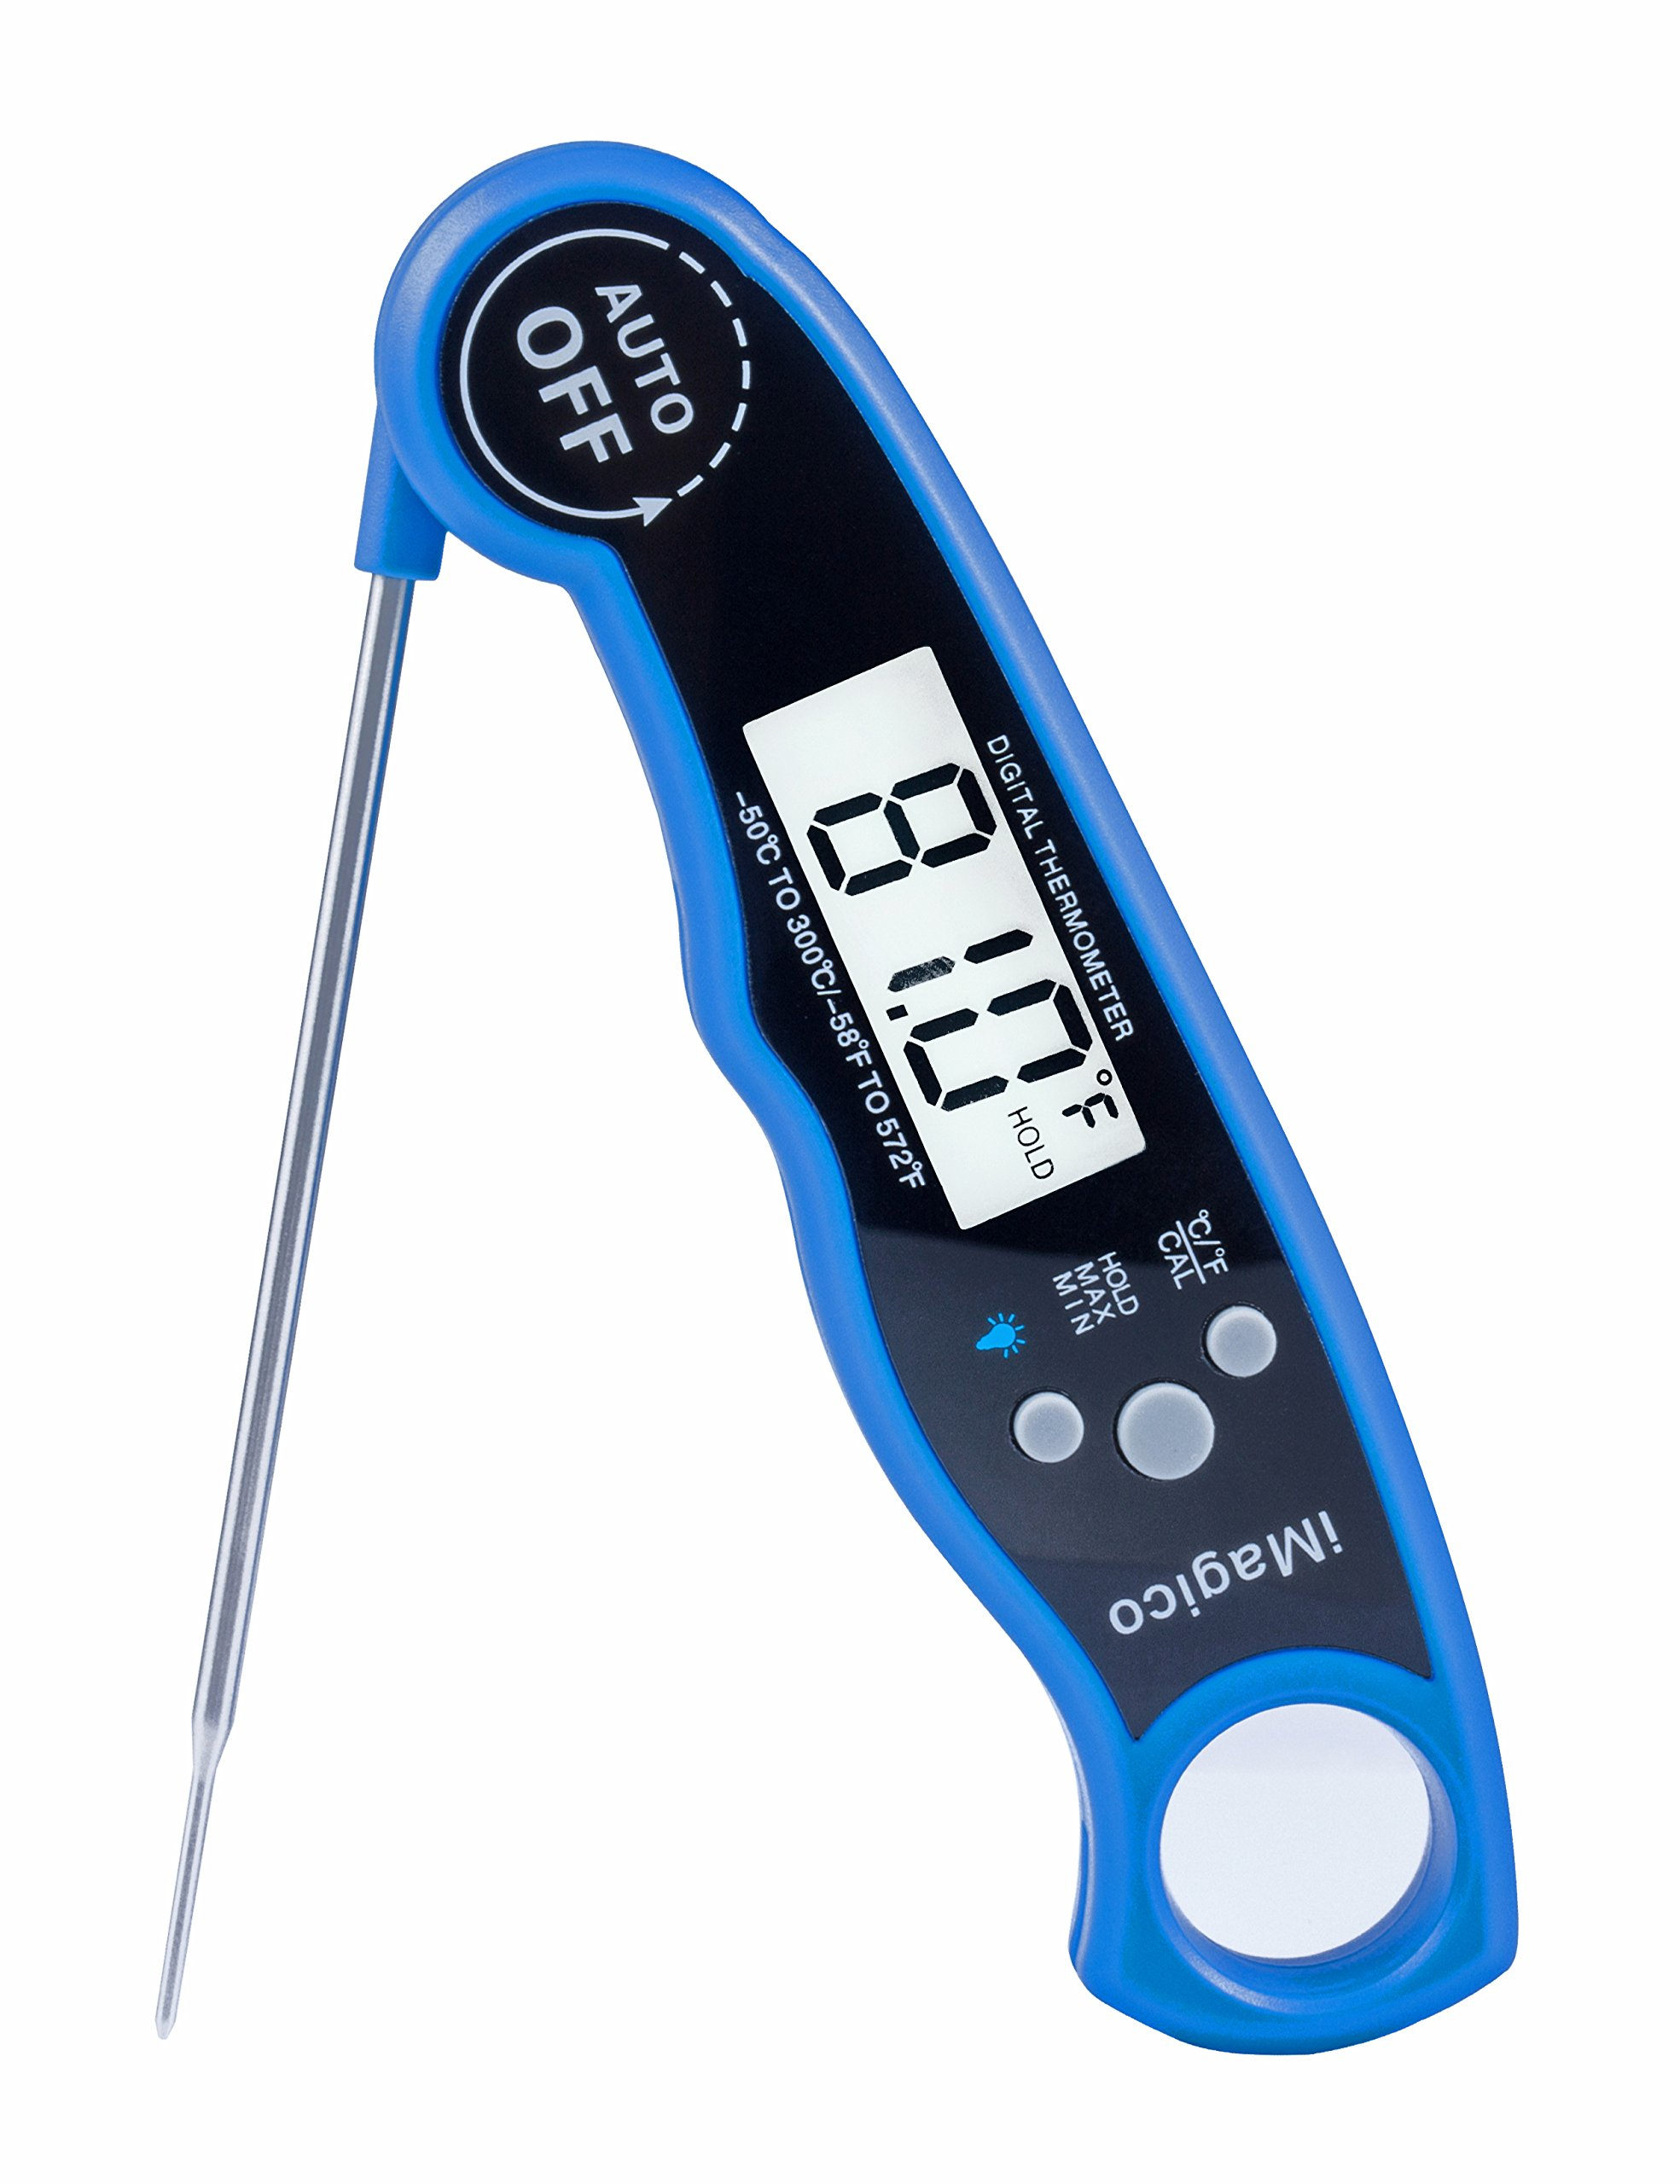 Instant Read Thermometer - Waterproof Digital Meat